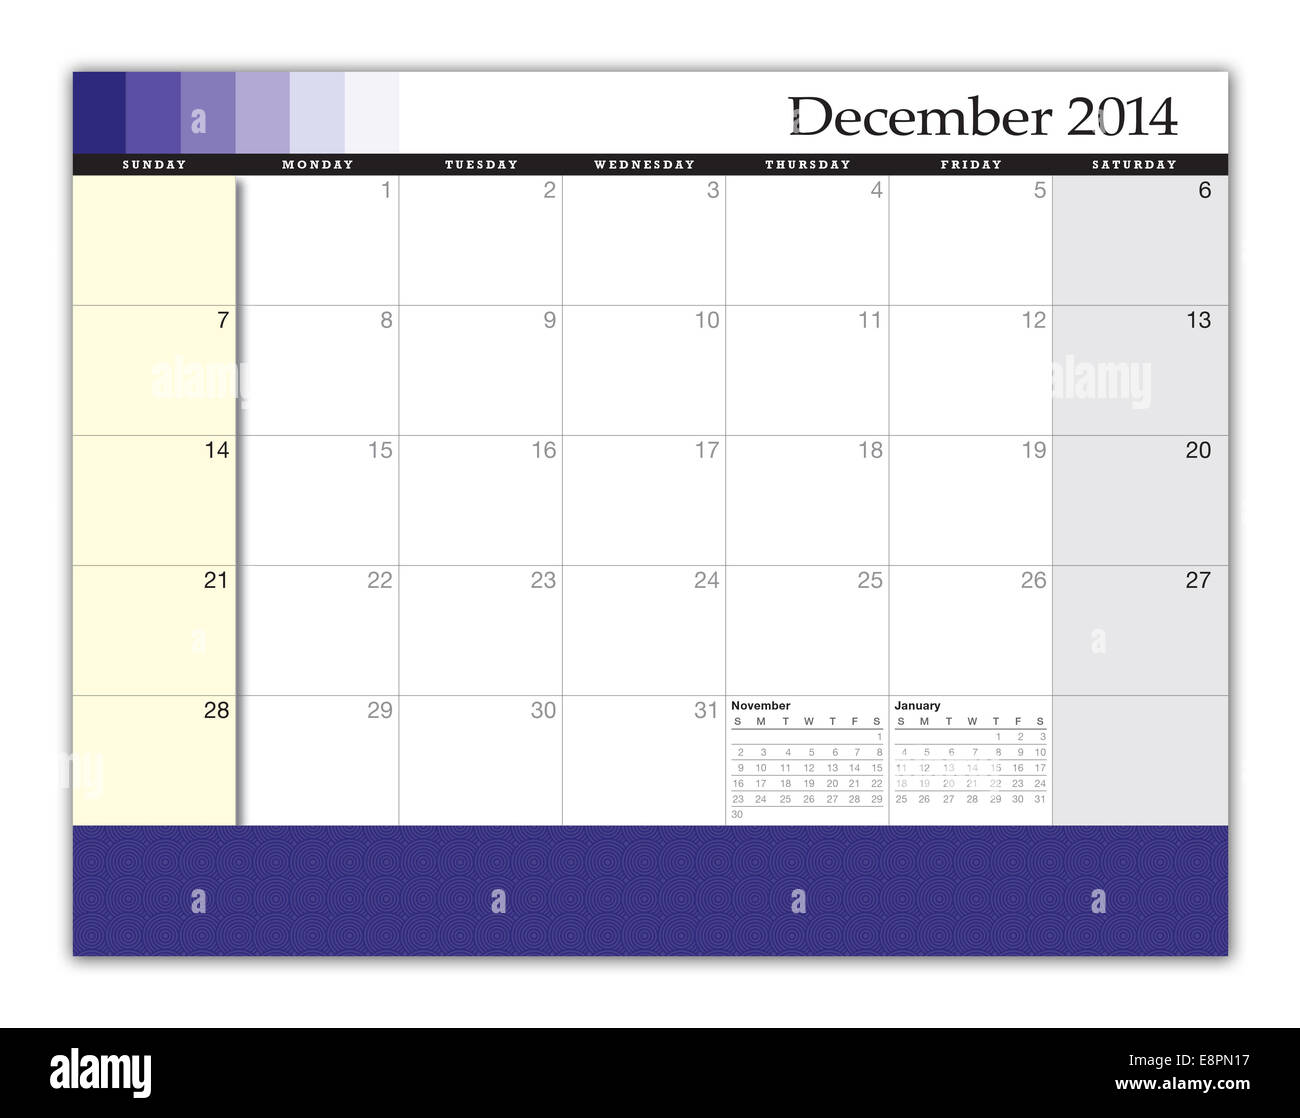 3D rendering of a December 2014 Calendar. Design and texture was created by the artist for this image. - Stock Image